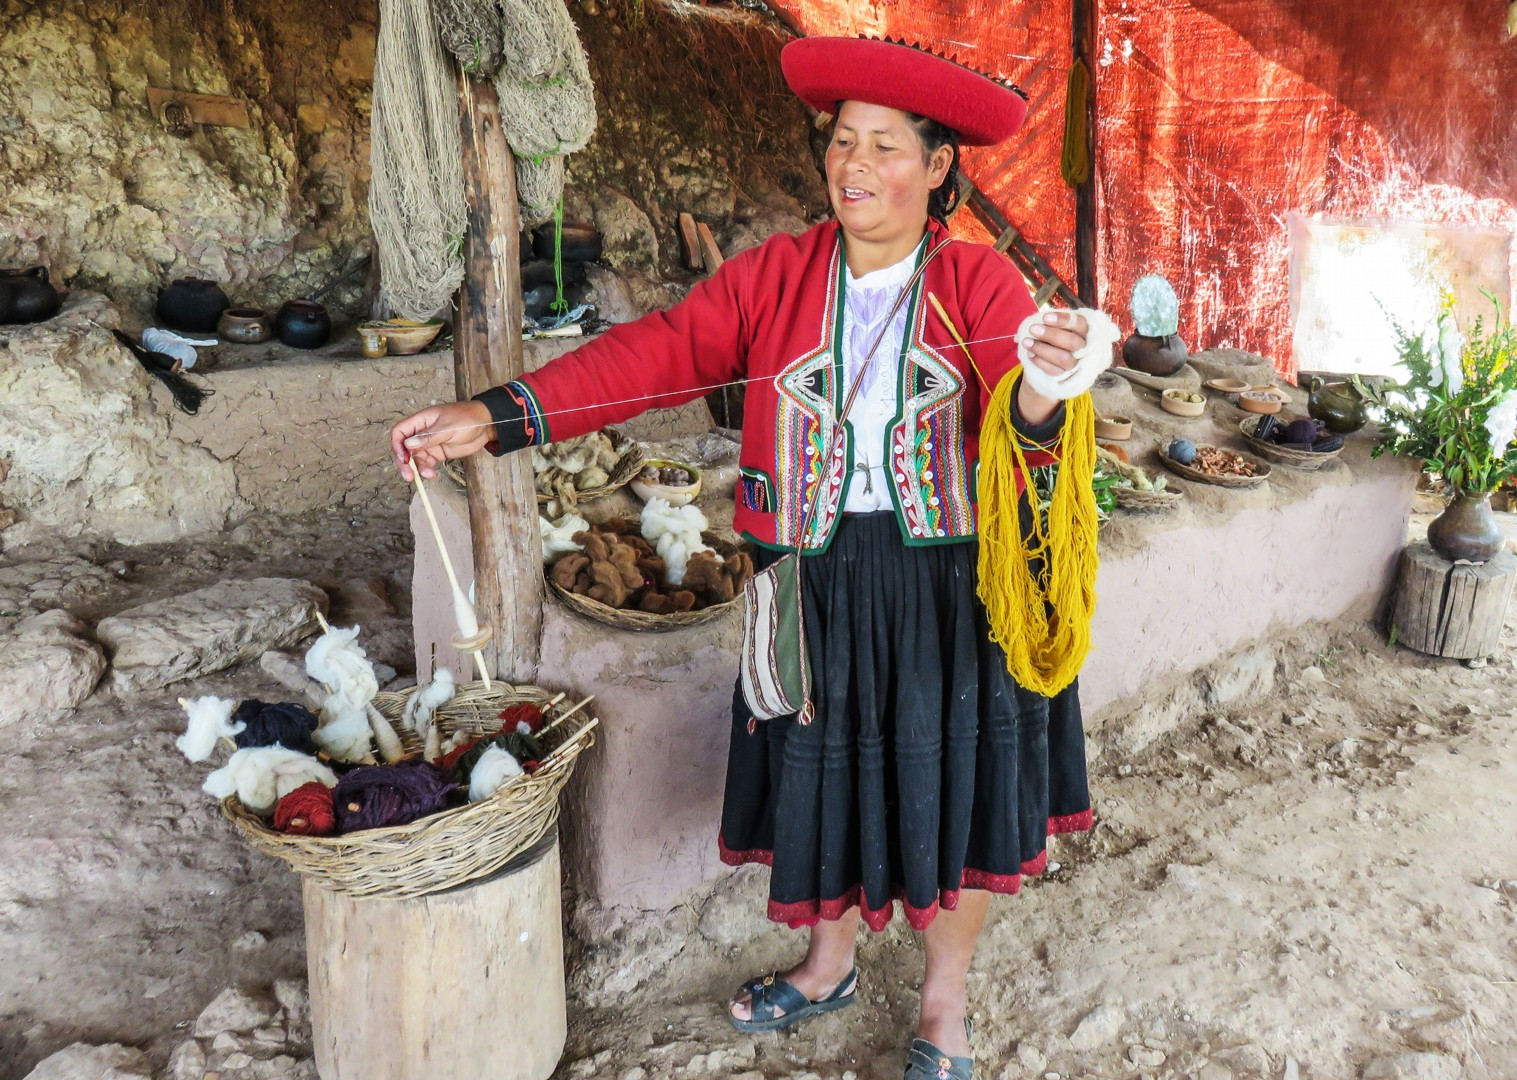 pisac-market-andean-adventurer-peru-guided-family-cycling-holiday.jpg - Peru - Andean Adventure - Guided Family Cycling Holiday - Family Cycling